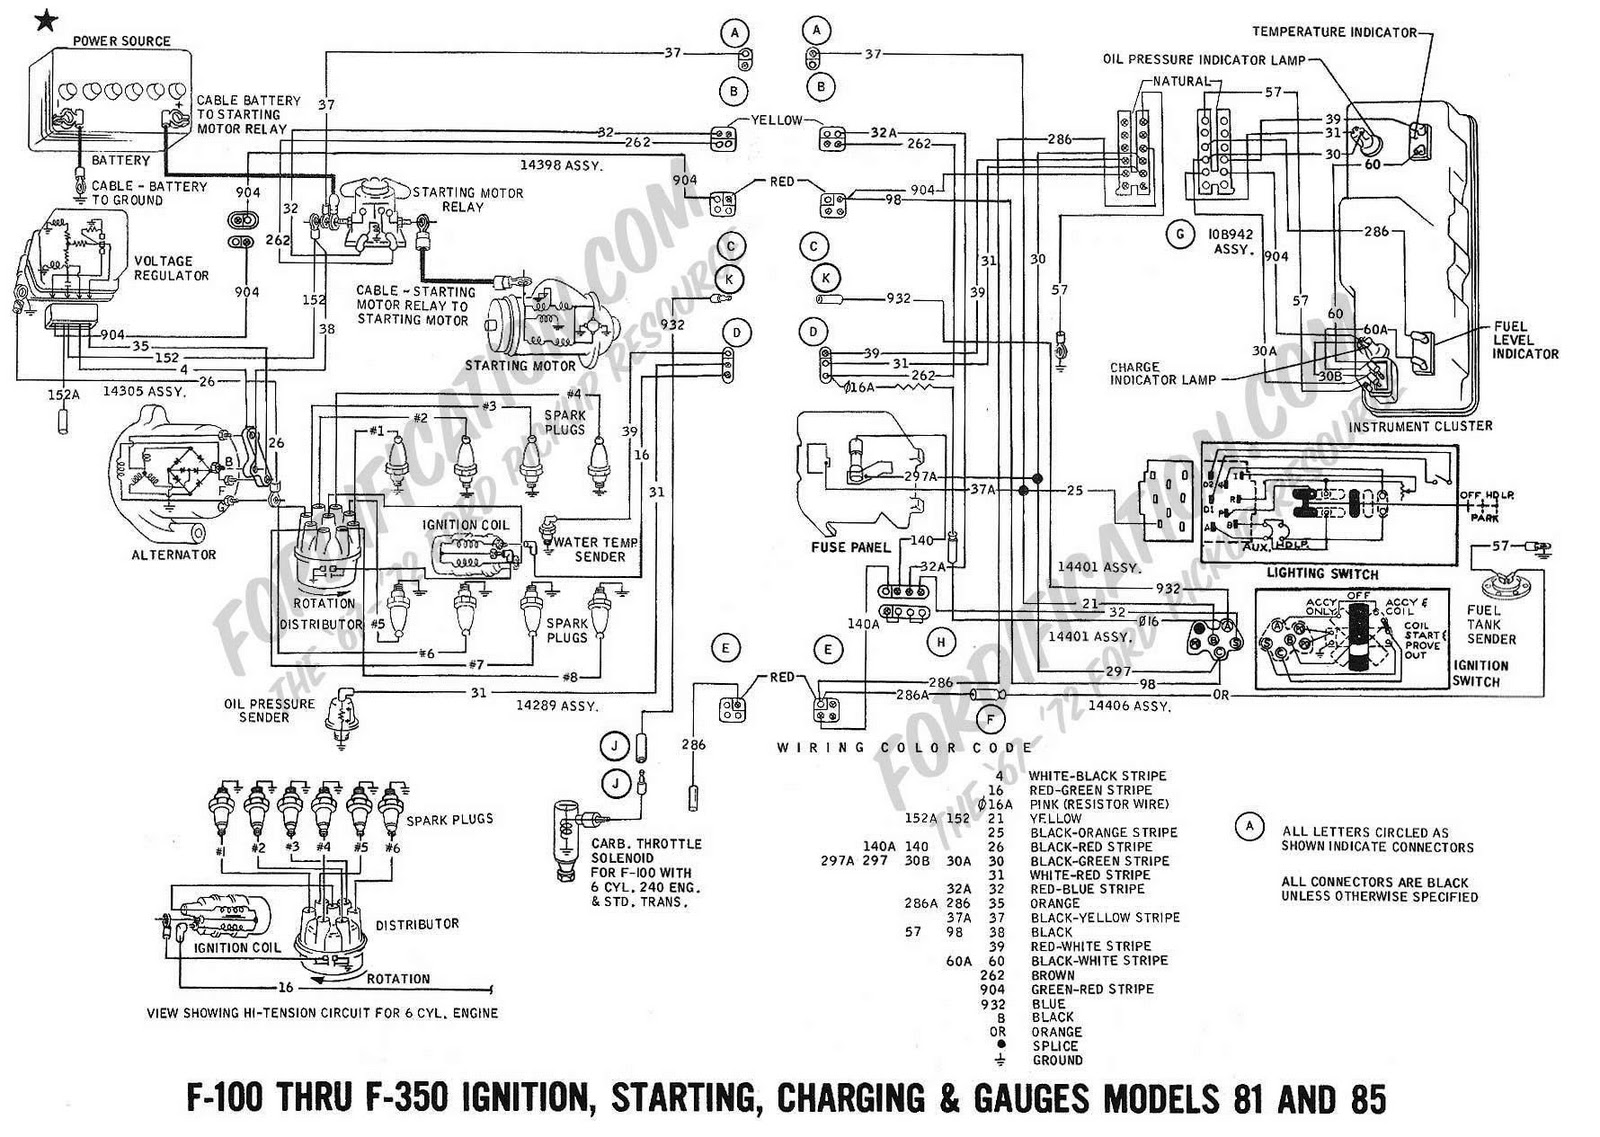 1968 mustang convertible top switch wiring diagram wiring diagram 66 Mustang Brake Diagram 1968 mustang convertible top switch wiring diagram